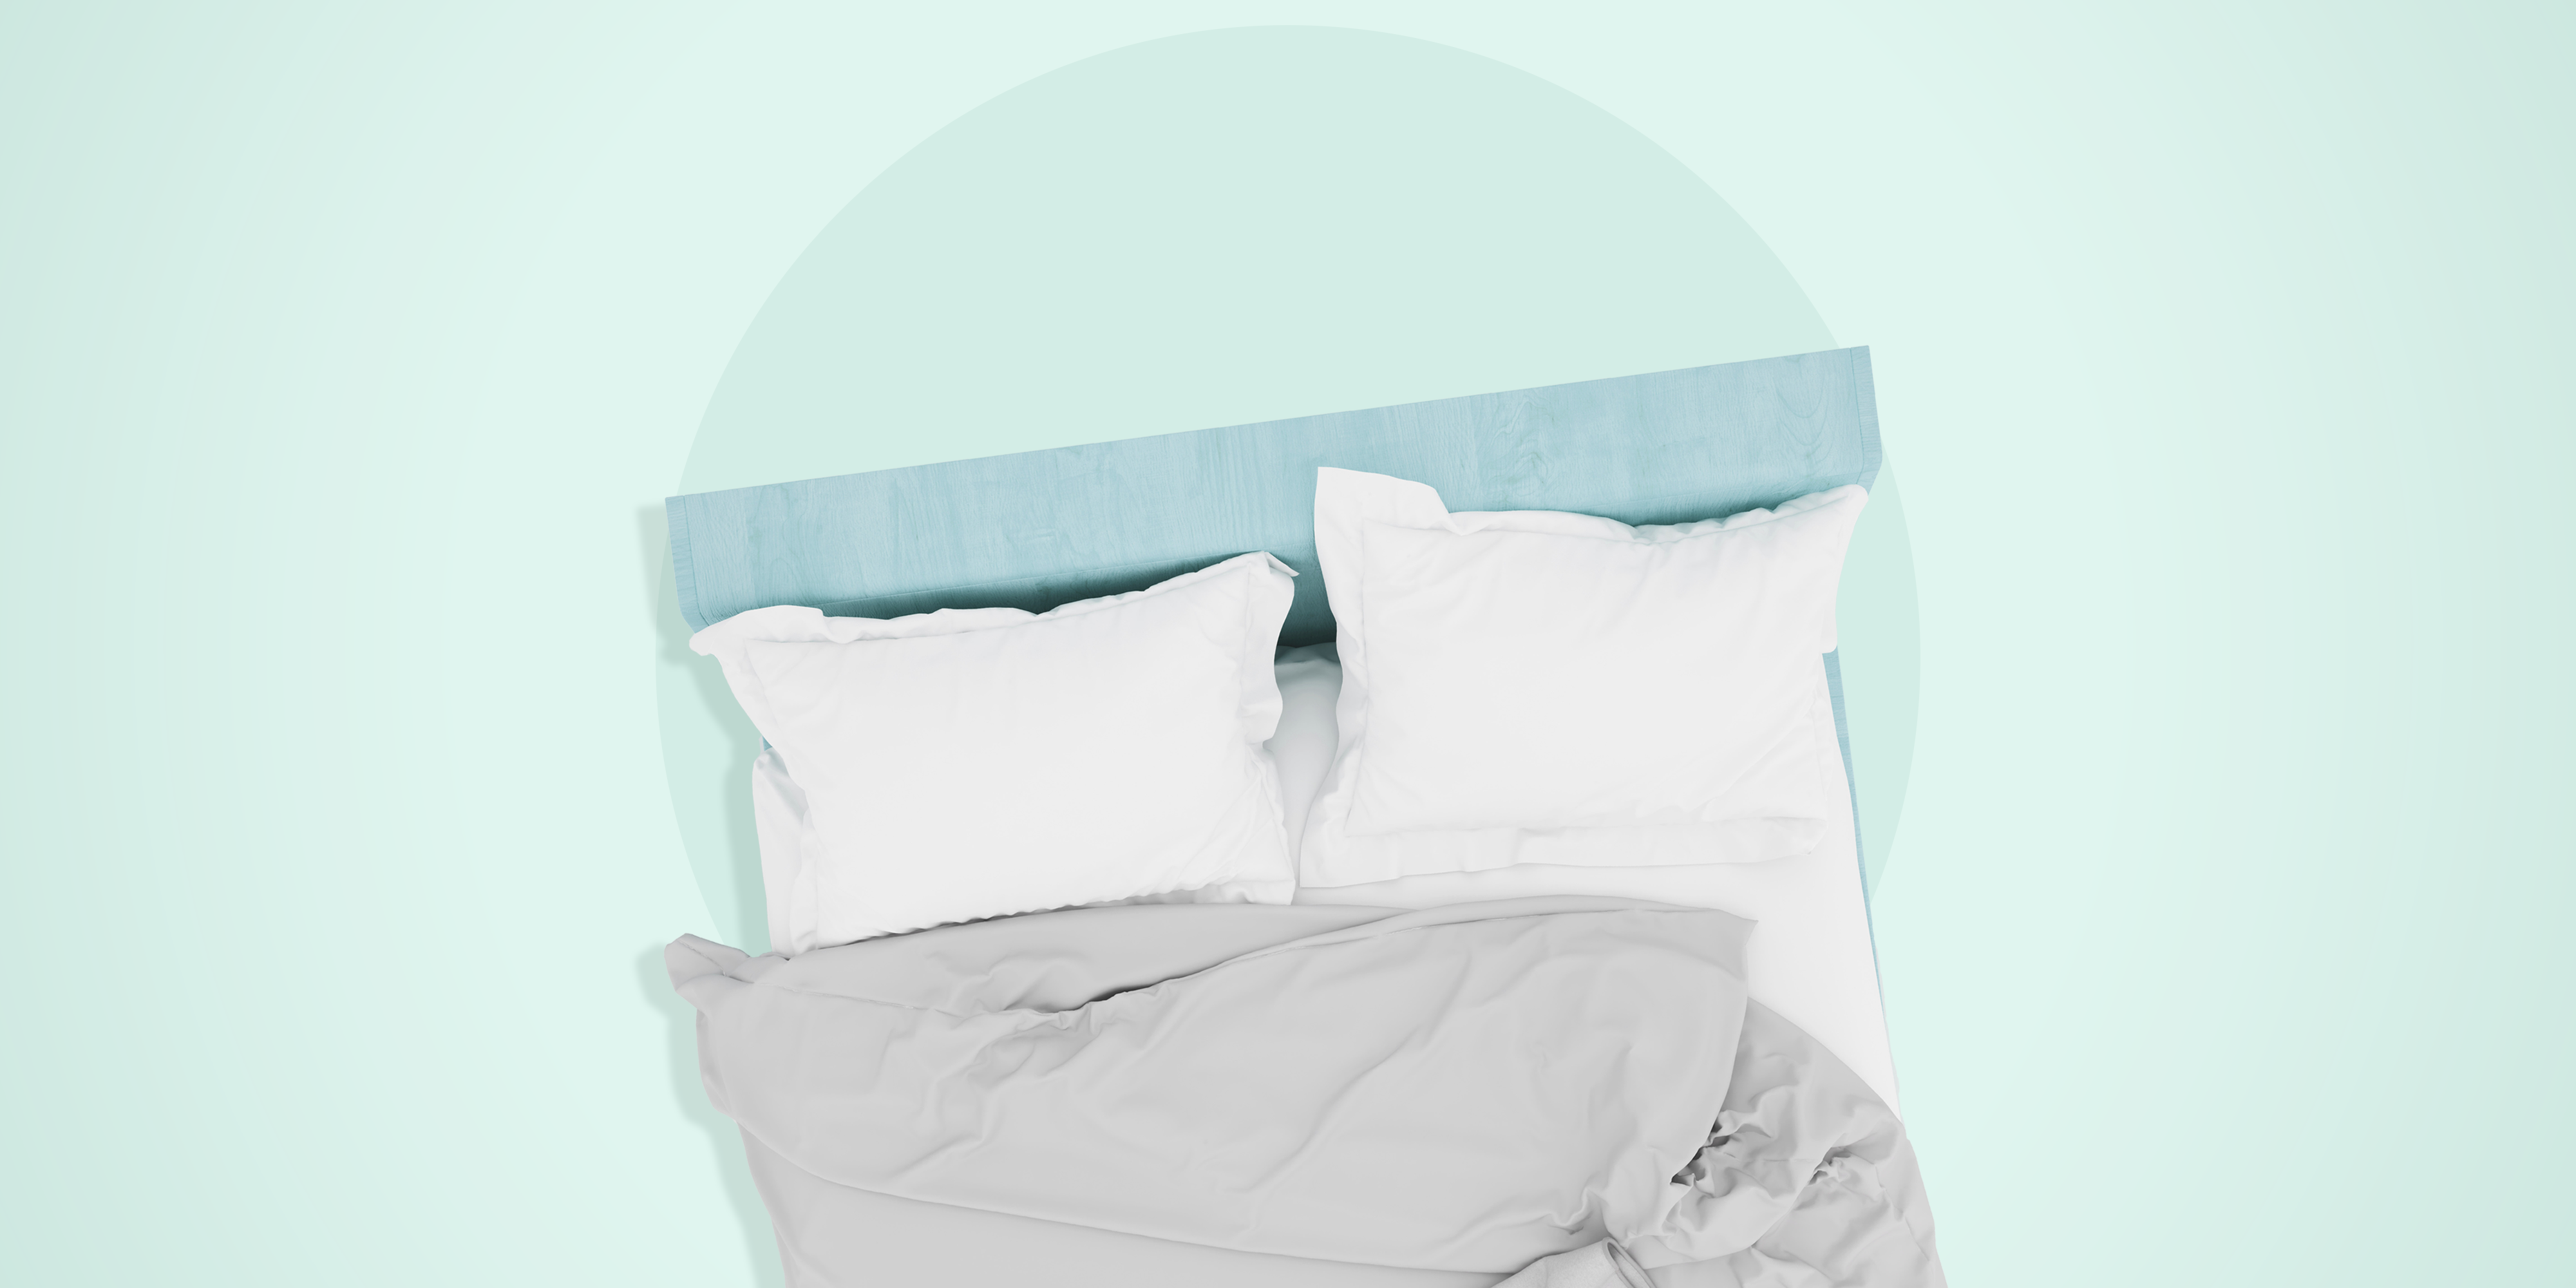 b955036762 How to Make a Bed the Right Way - Best Way to Make Your Bed